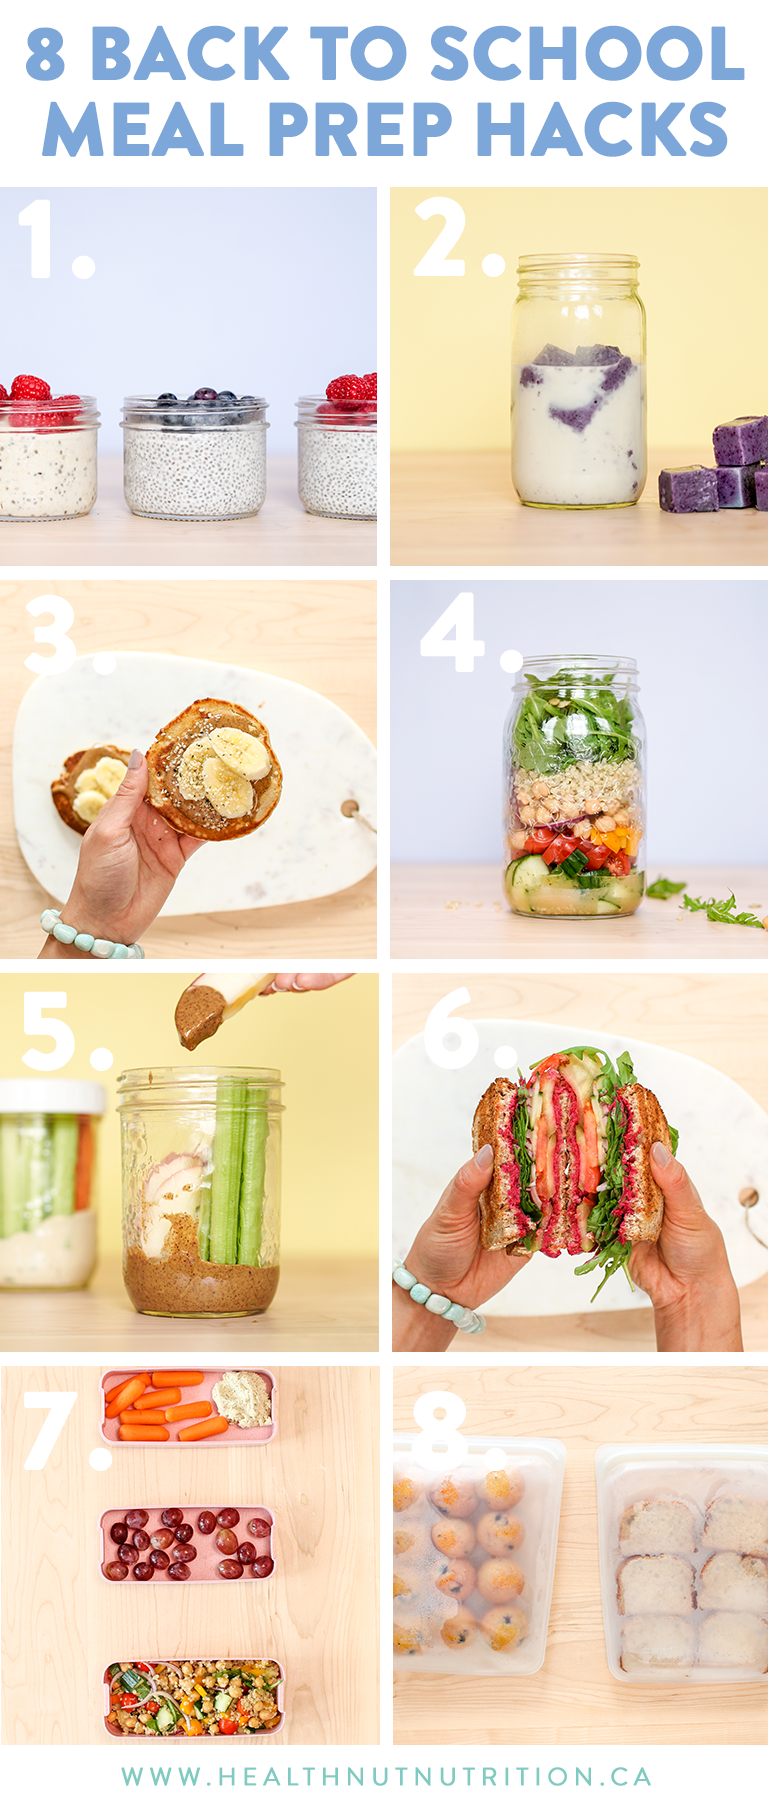 8 MUST KNOW meal prep hack to help you save time during the back to school season! Even if you're not a student (like myself), these tricks can apply to anyone who is looking to step up their meal prepping game by making healthy and delicious foods and save time while doing it.